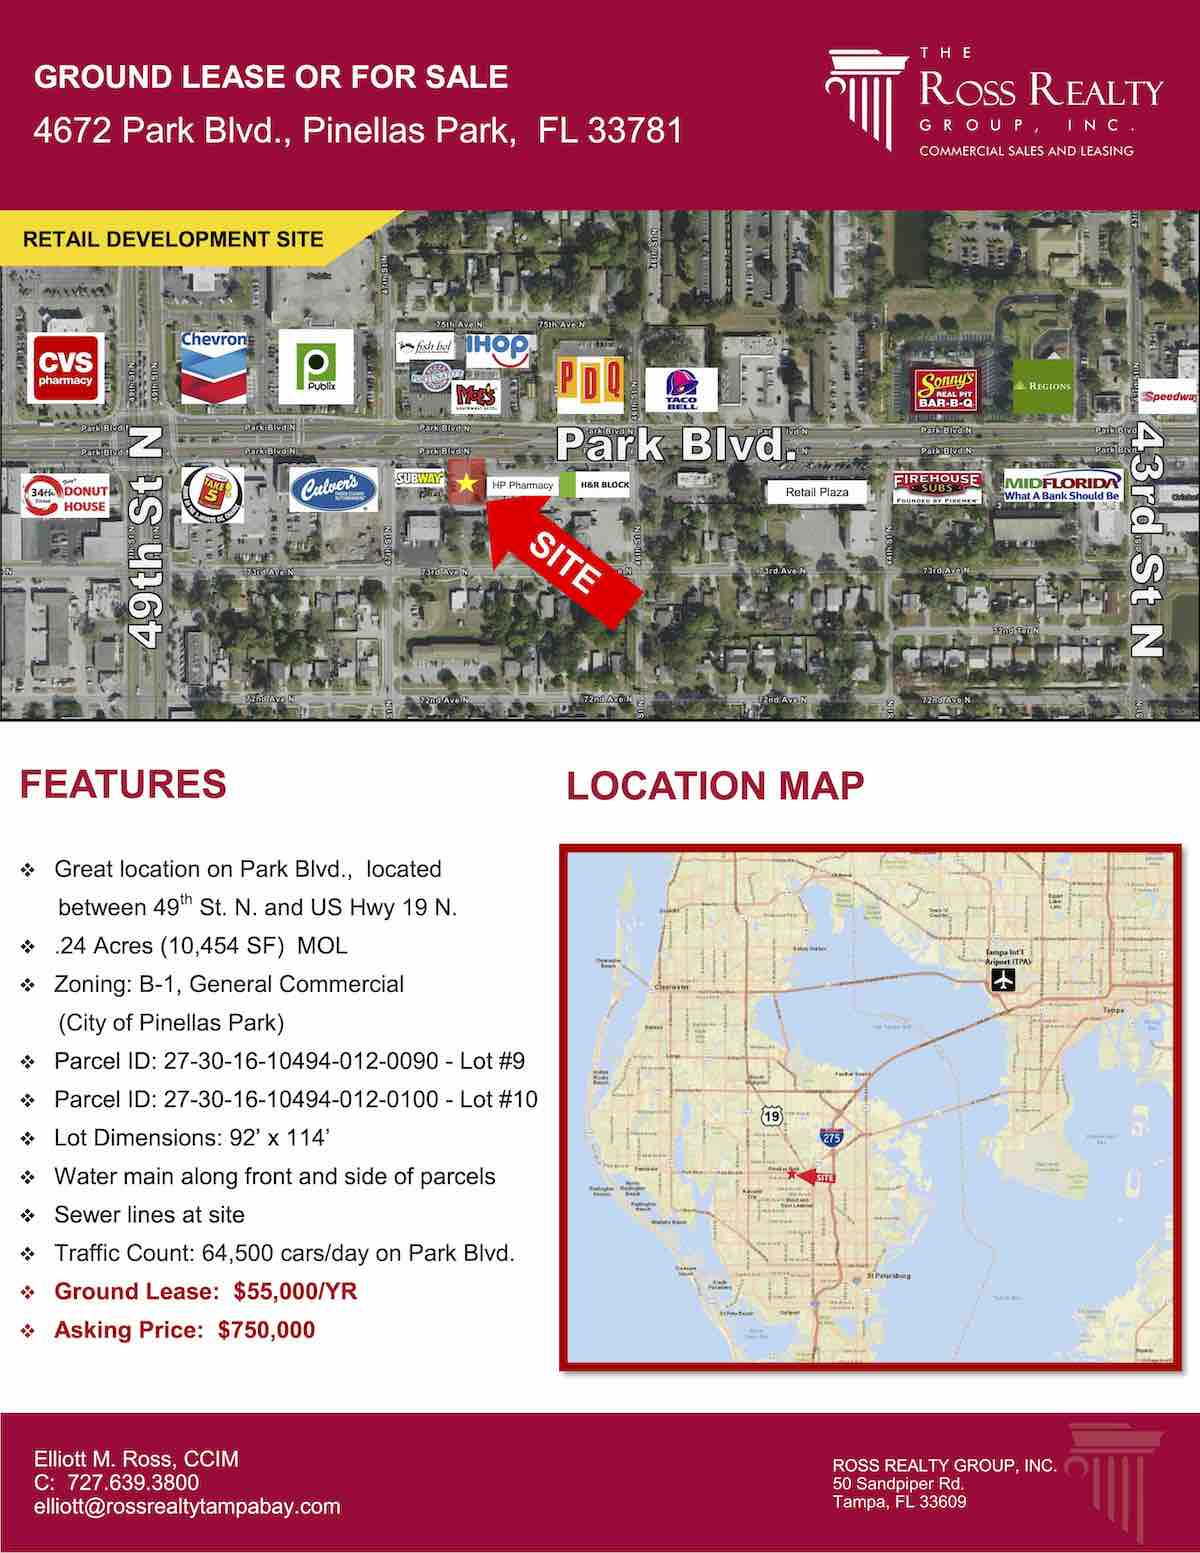 Tampa Commercial Real Estate - GROUND LEASE OR FOR SALE - 4672 Park Blvd., Pinellas Park, FL 33781 P1